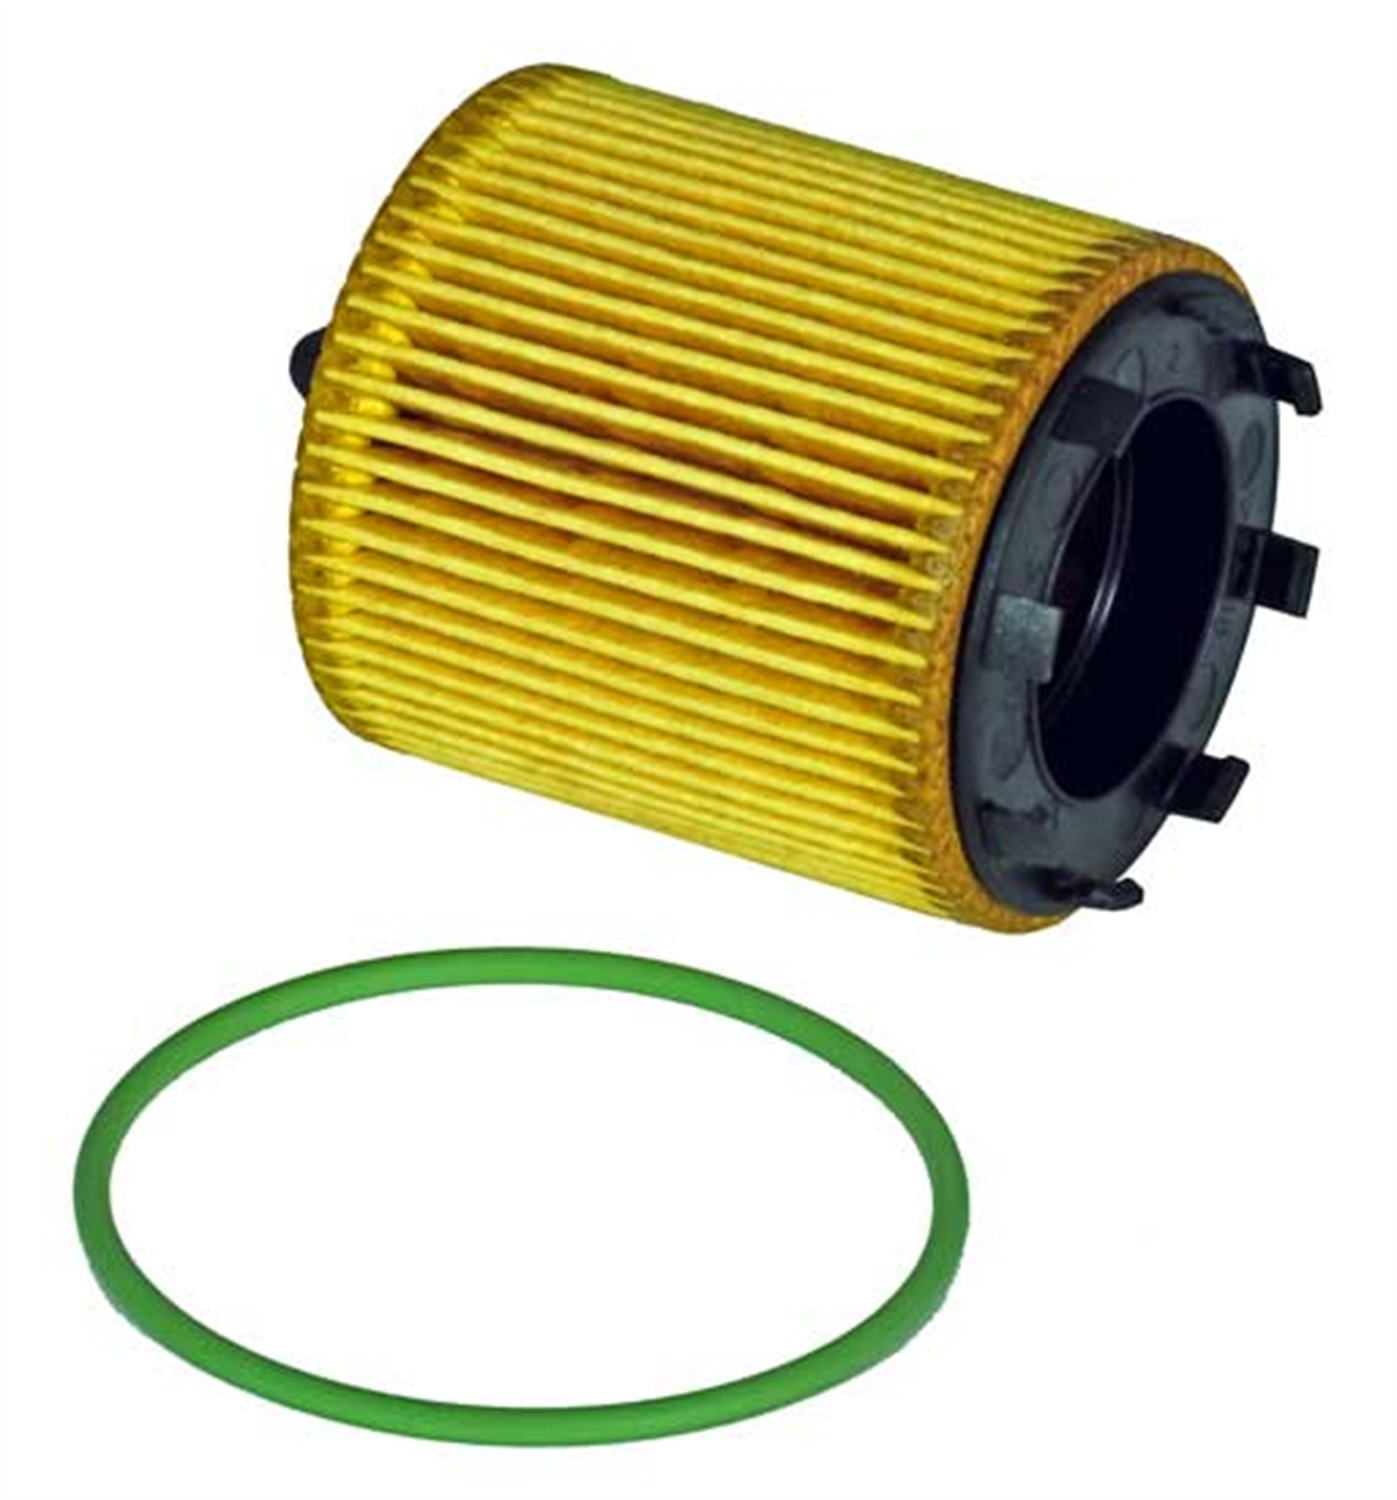 K&amp;N Filters HP-7000 Cartridge <em>Oil</em> <em>Filter</em>